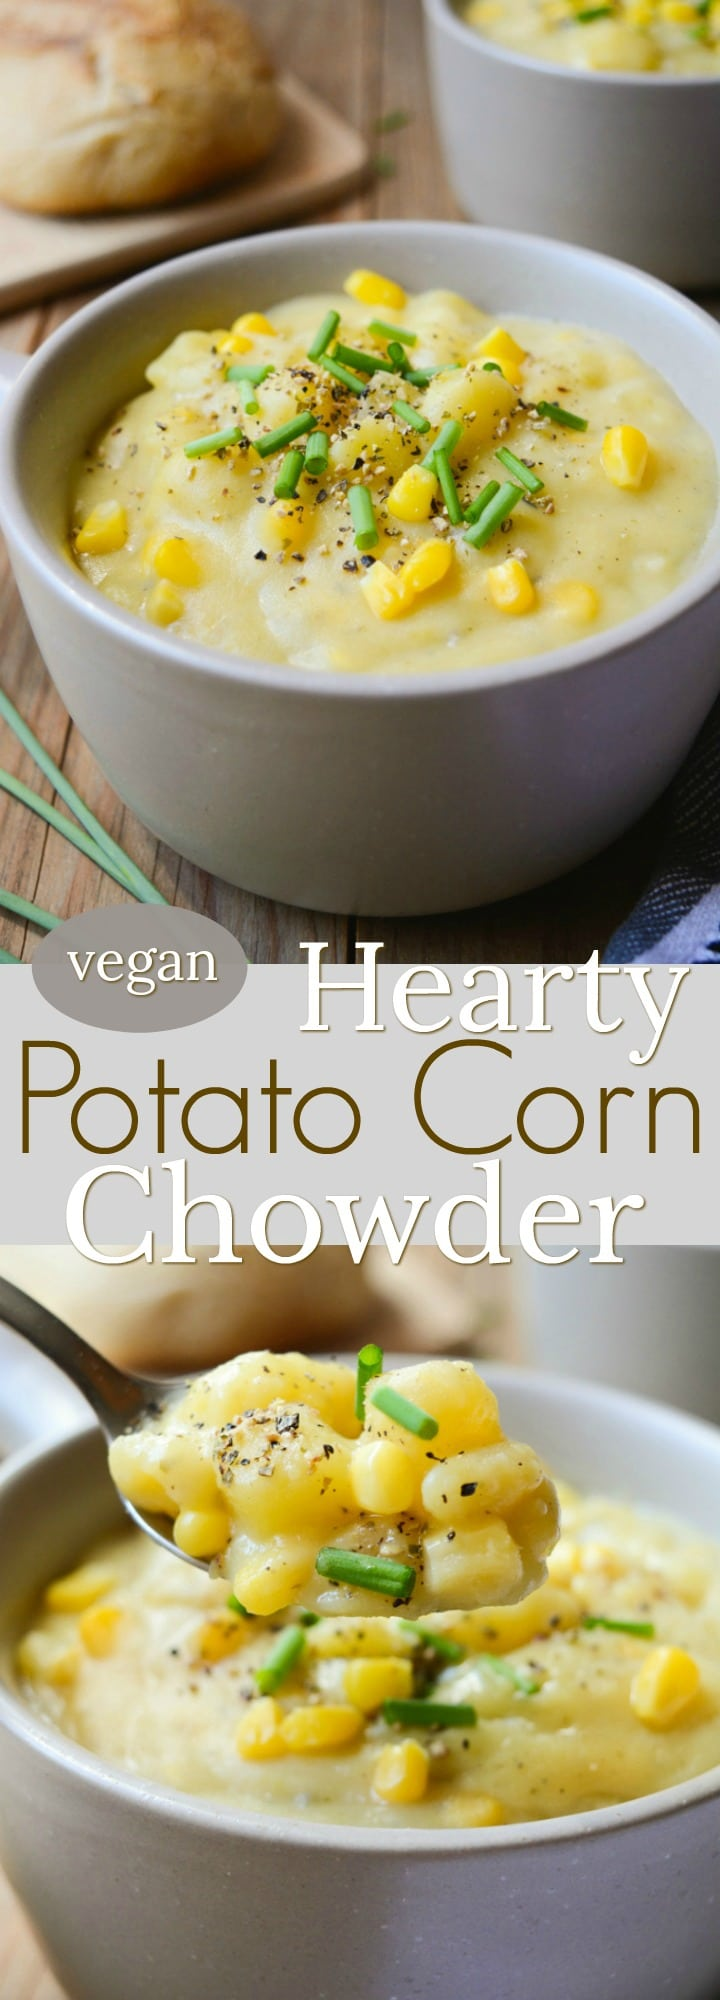 Vegan Potato Corn Chowder is a thick and hearty, dairy-free recipe. It takes only one pot and a few simple ingredientsyou have in your kitchen. This rich and chunky soup will keep you warm all winter long!